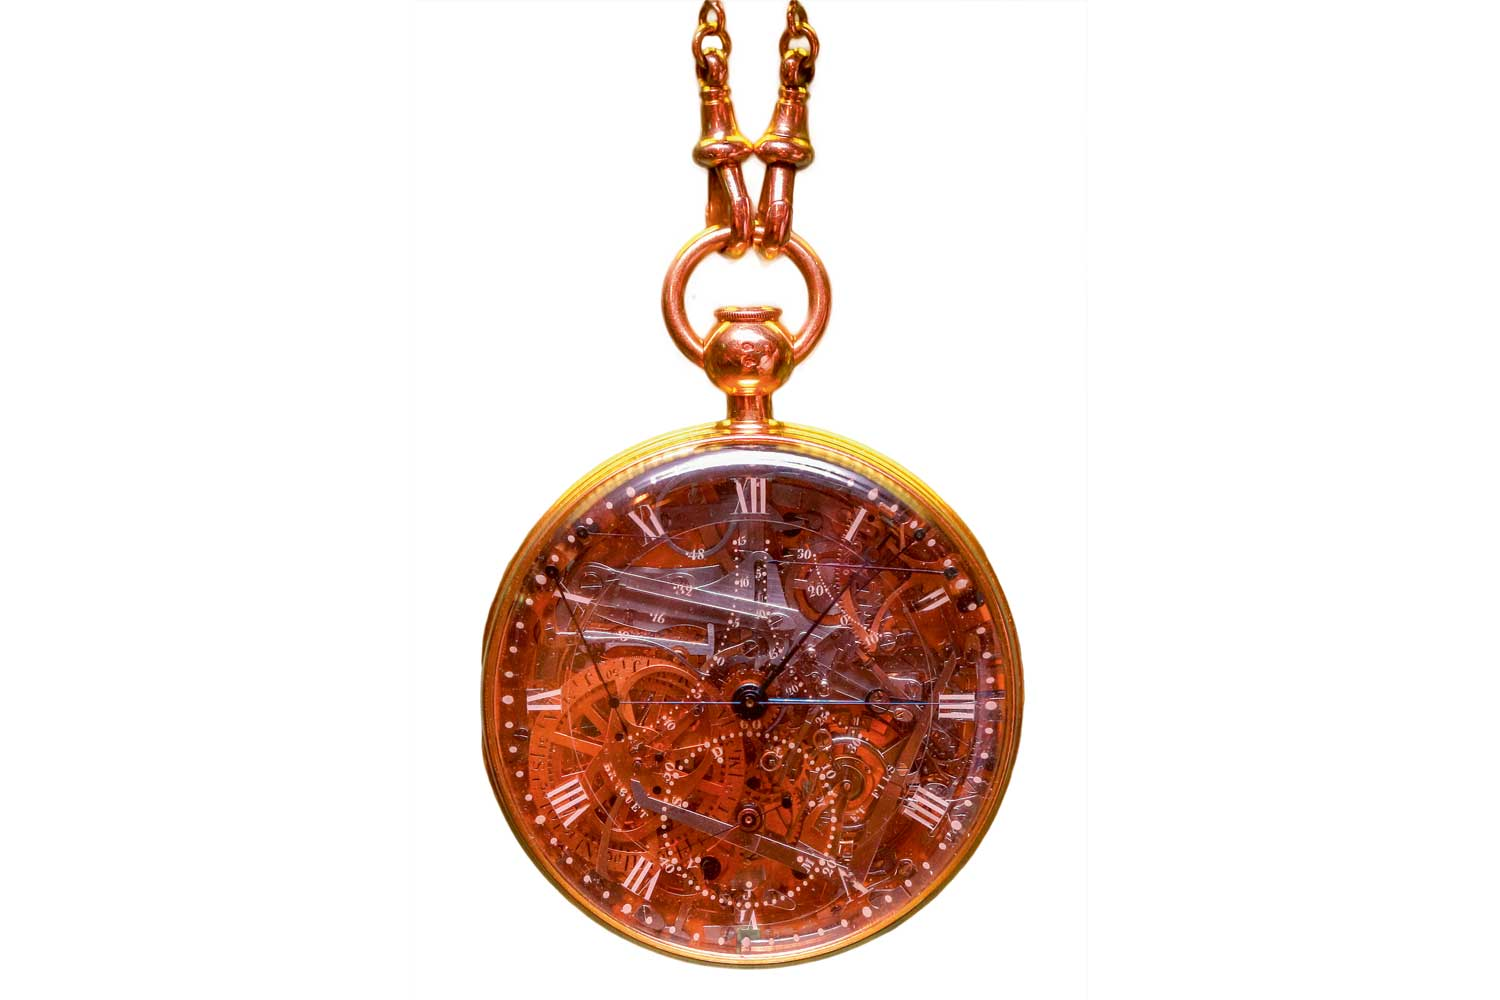 Breguet's pocket watch No. 160, commissioned for Marie Antoinette